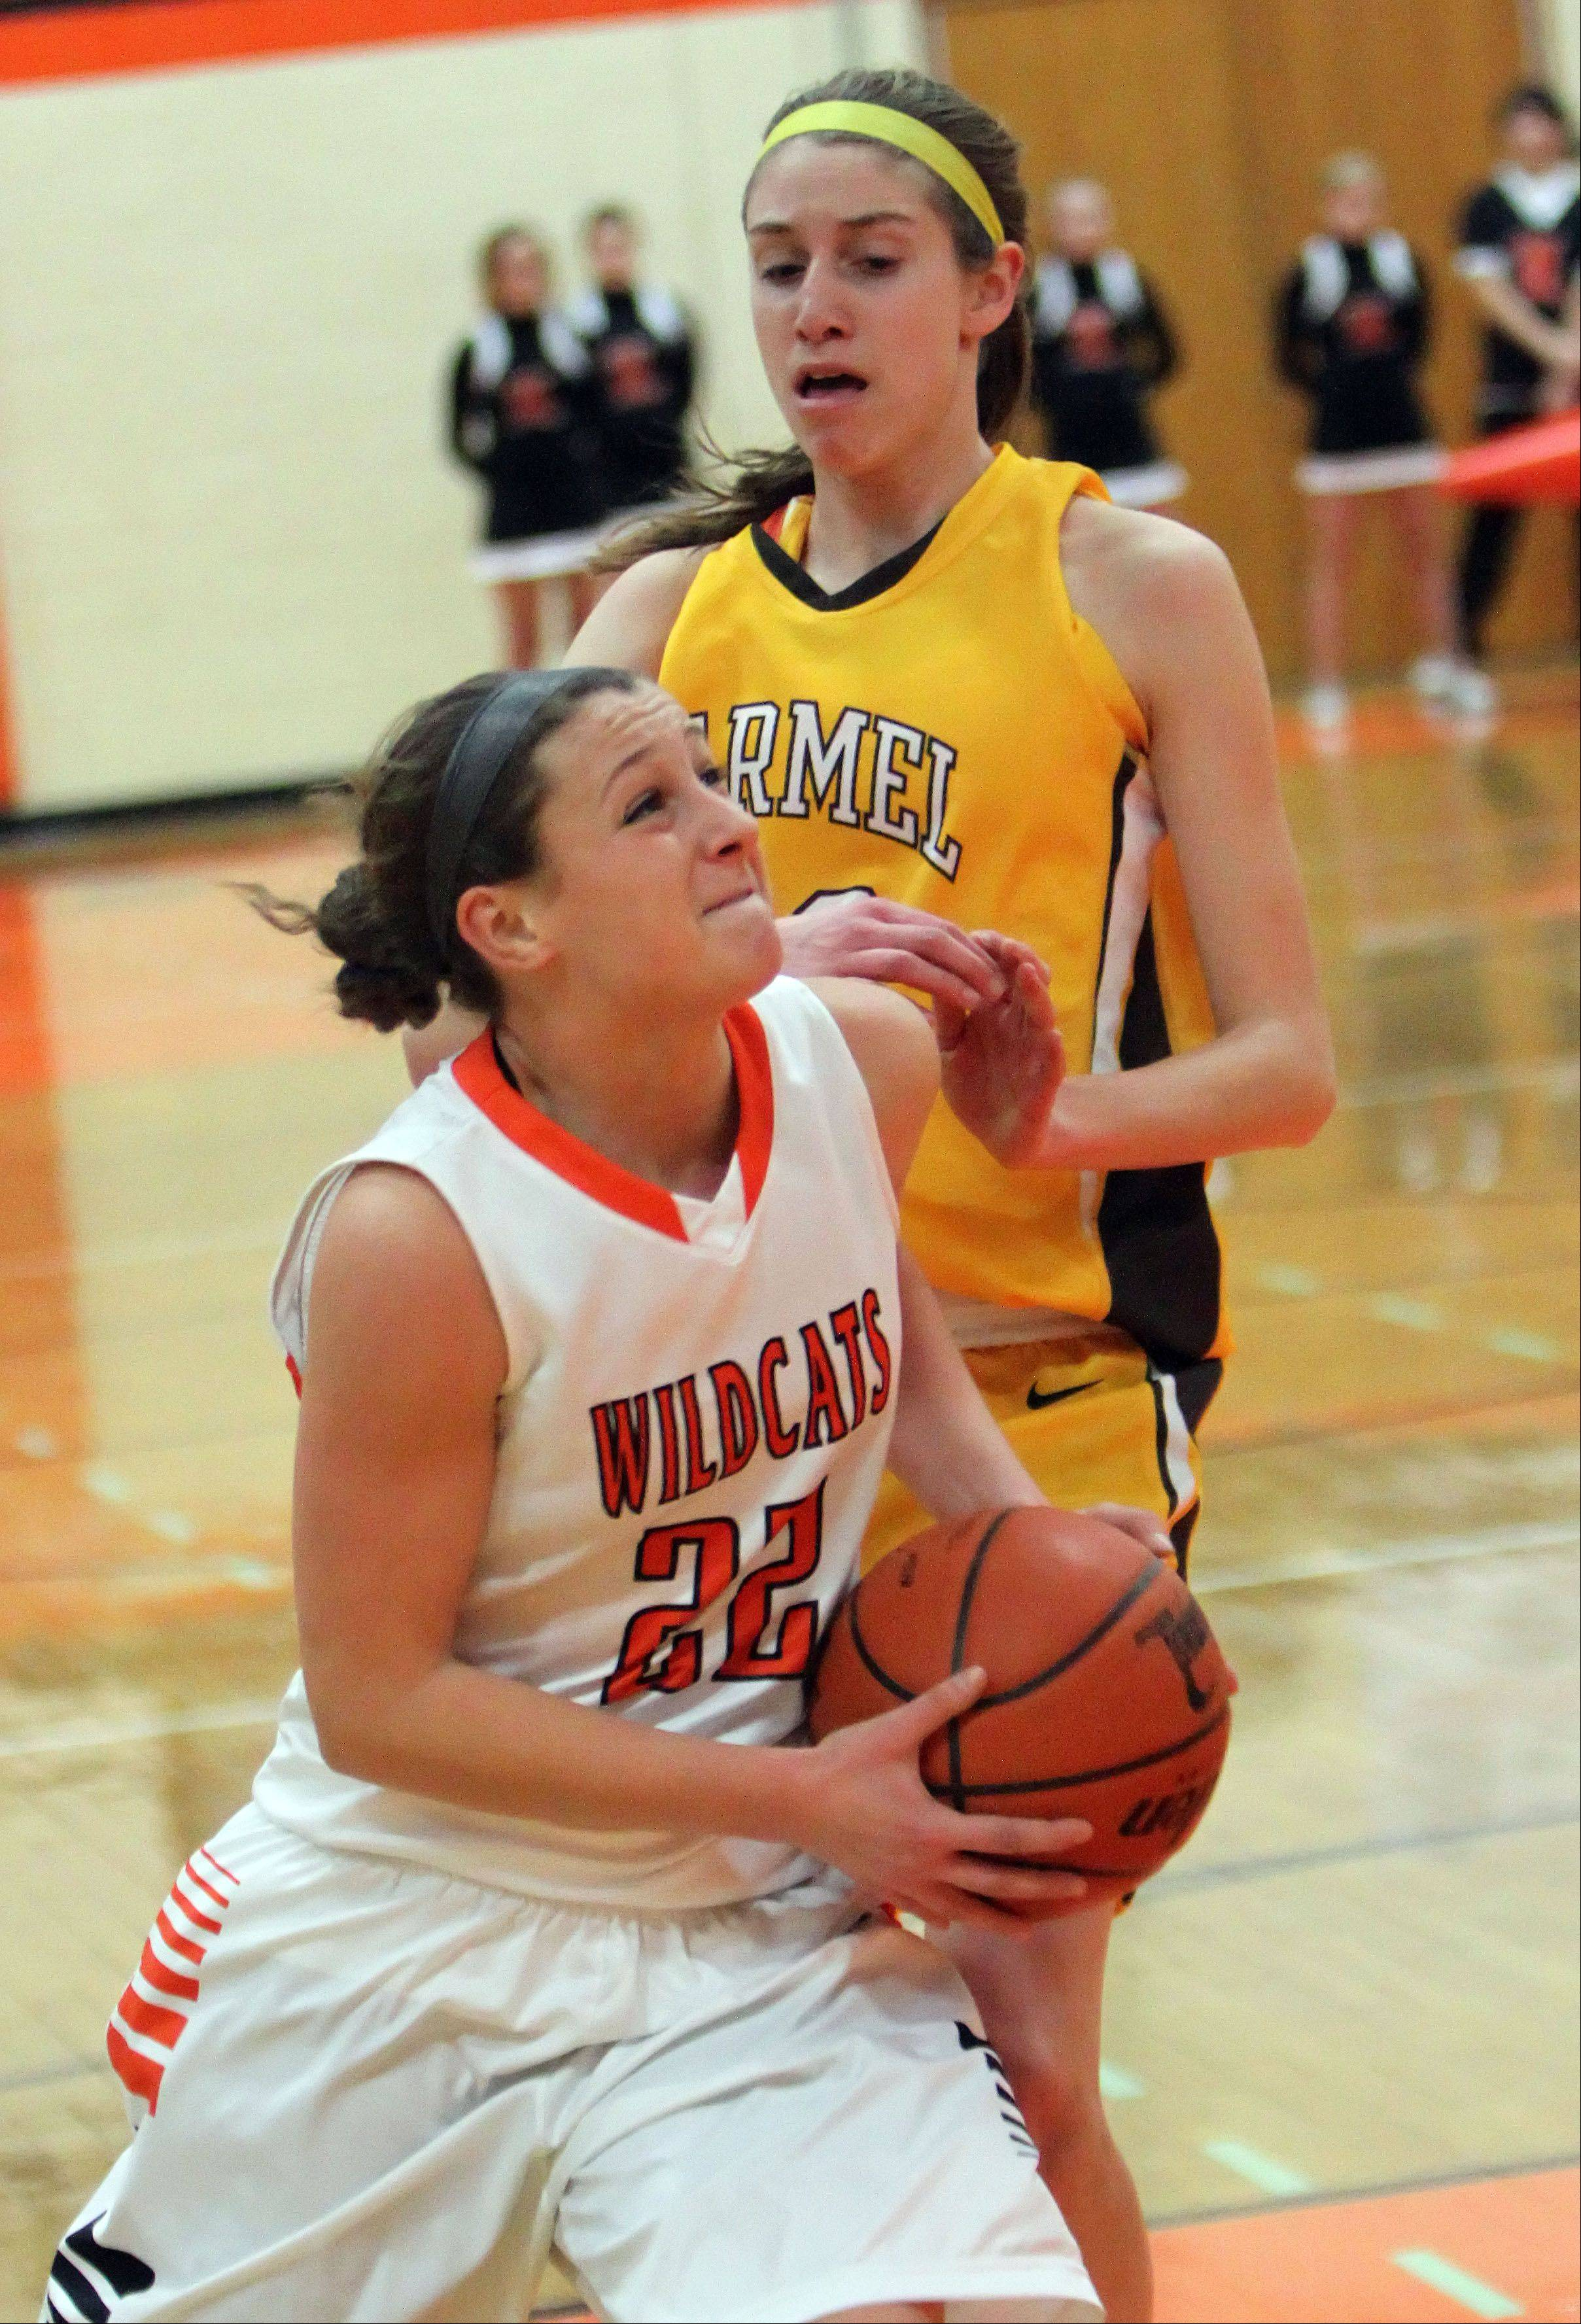 Libertyville�s Olivia Mayer, left, drives on Carmel�s Claire Ogrinc. Mayer has committed to a future in lacrosse and basketball at Augustana.